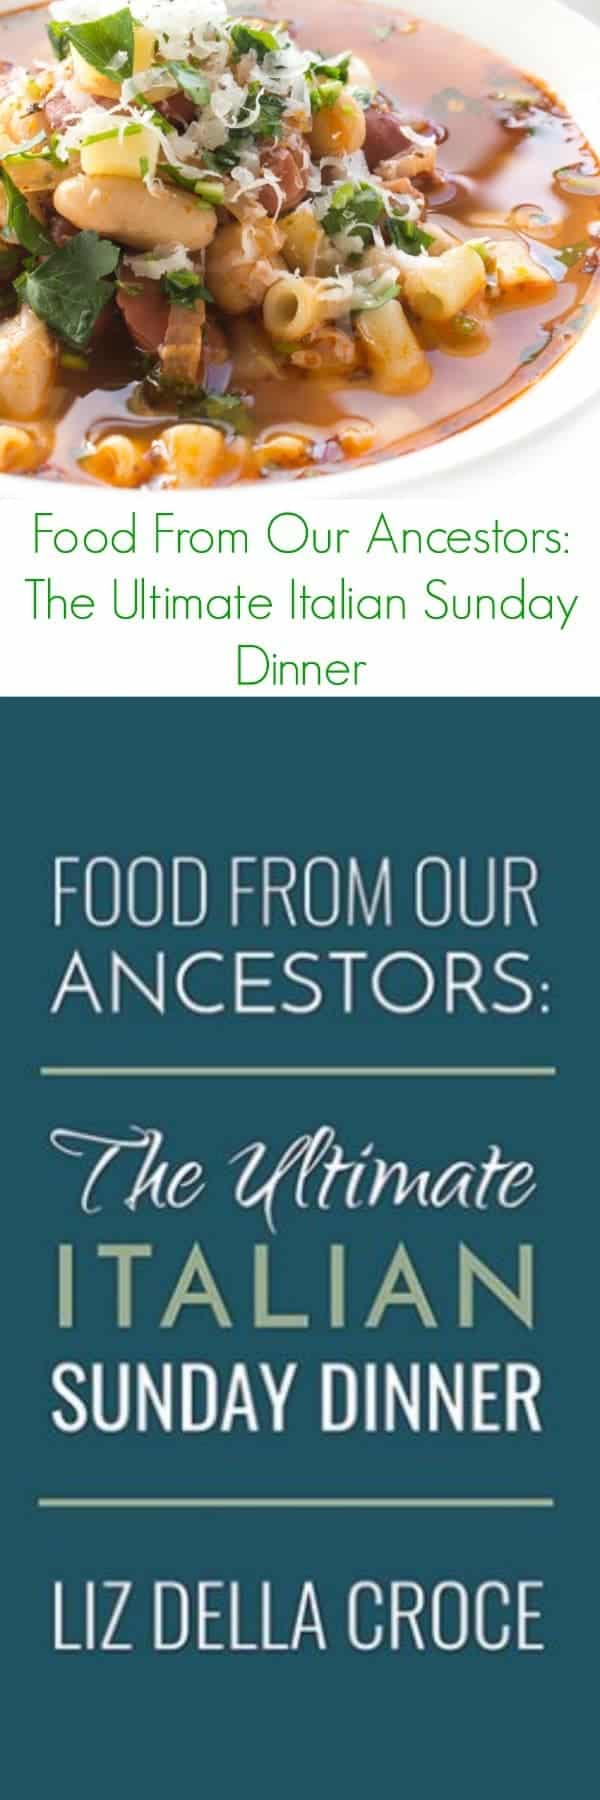 food-from-our-ancestors-the-ultimate-italian-sunday-dinner